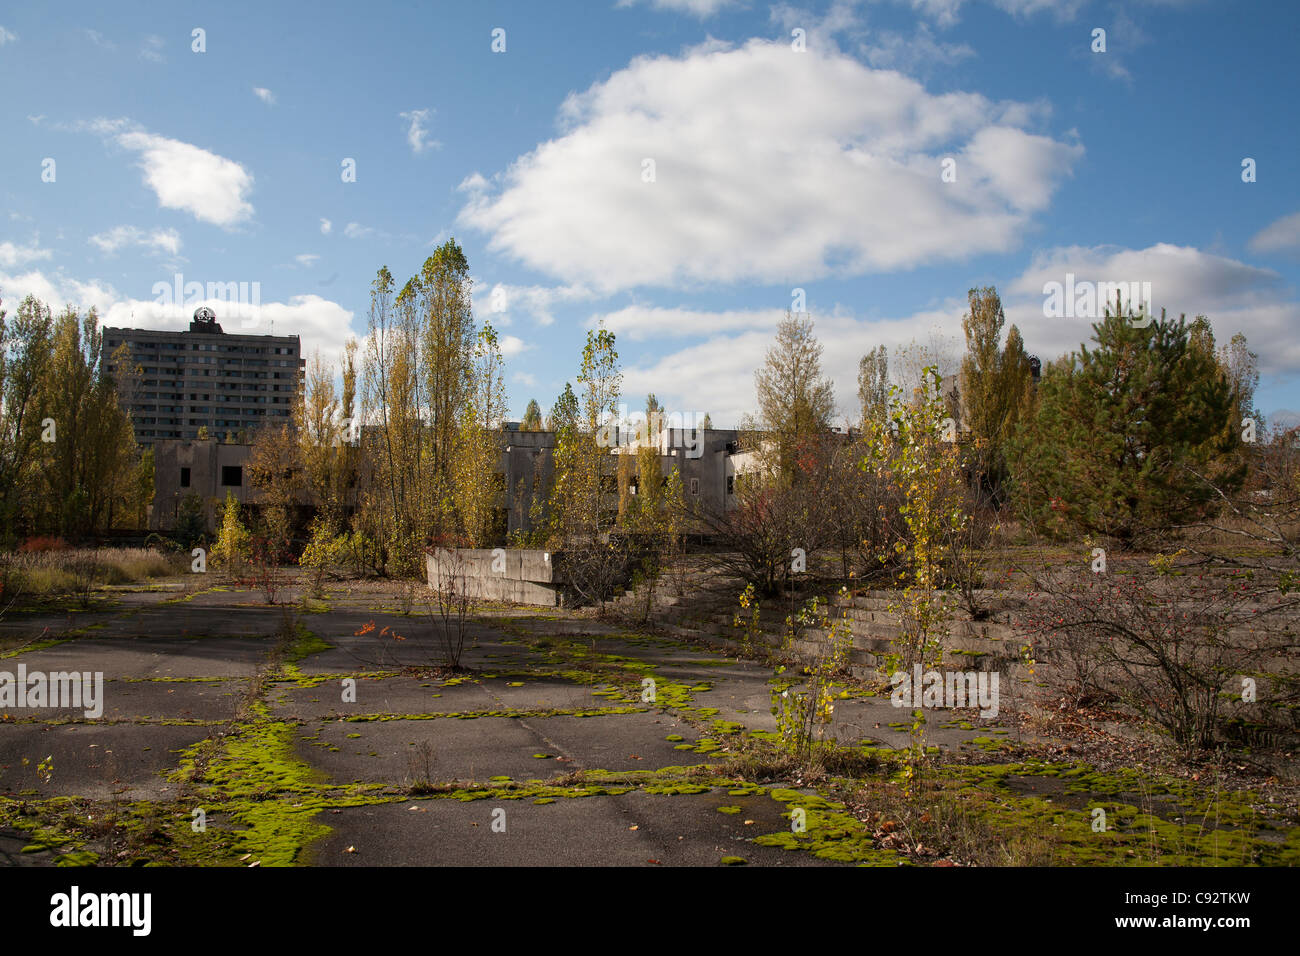 Lenin Square with the Voskhod building in the distance Pripyat Chernobyl exclusion zone Ukraine - Stock Image